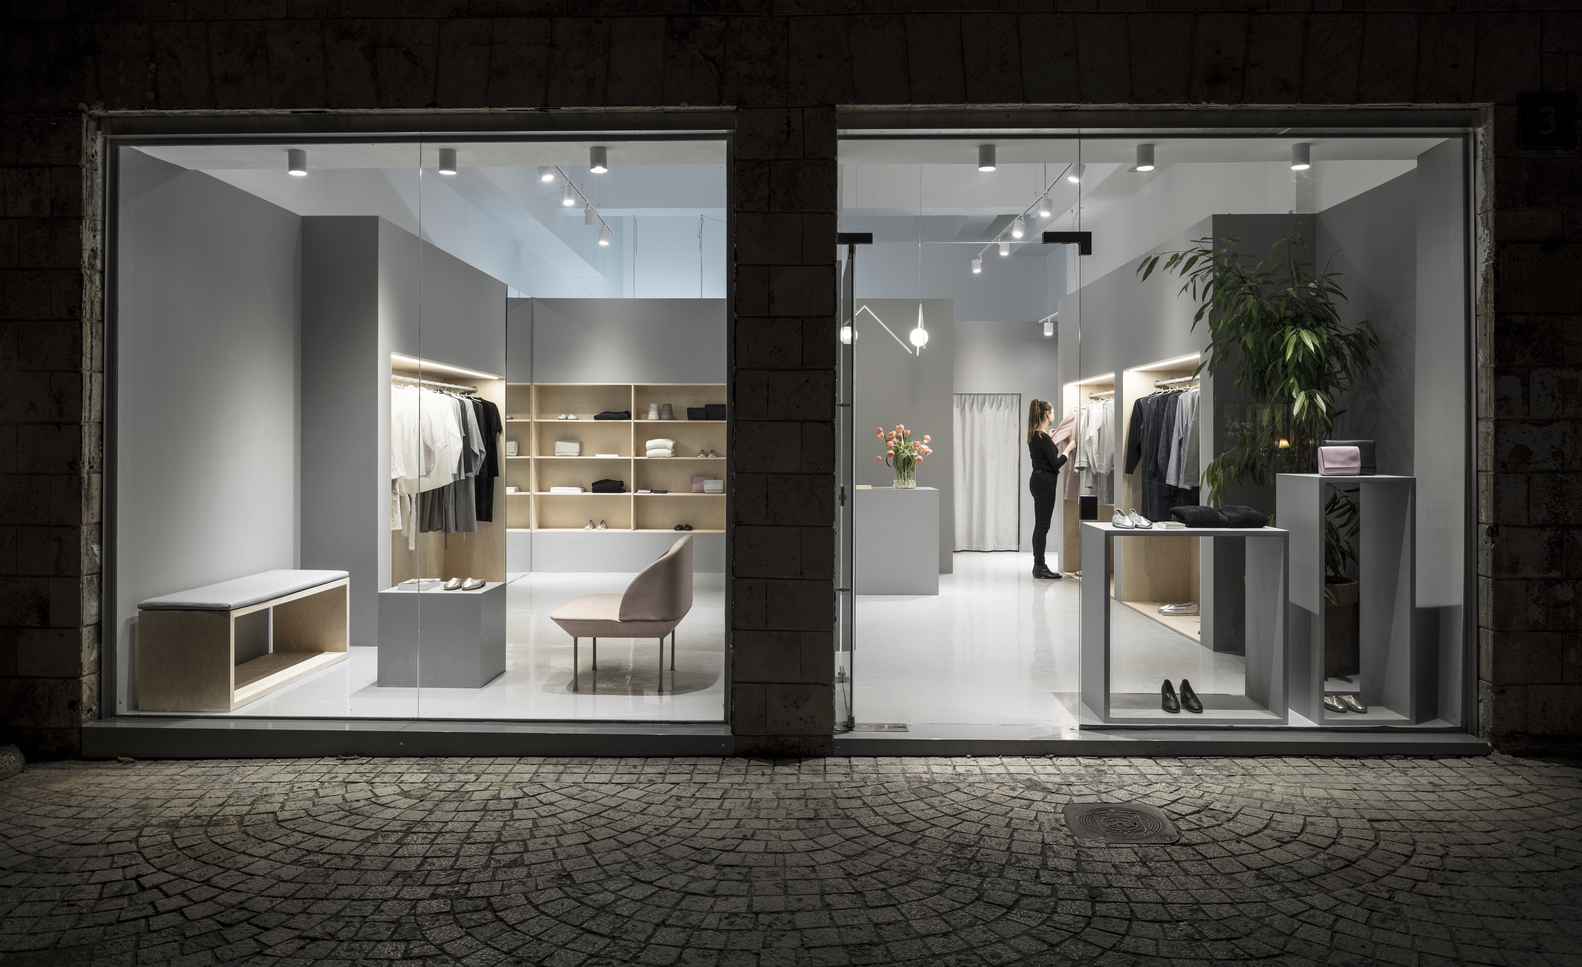 Retail Lighting Five Best Practices